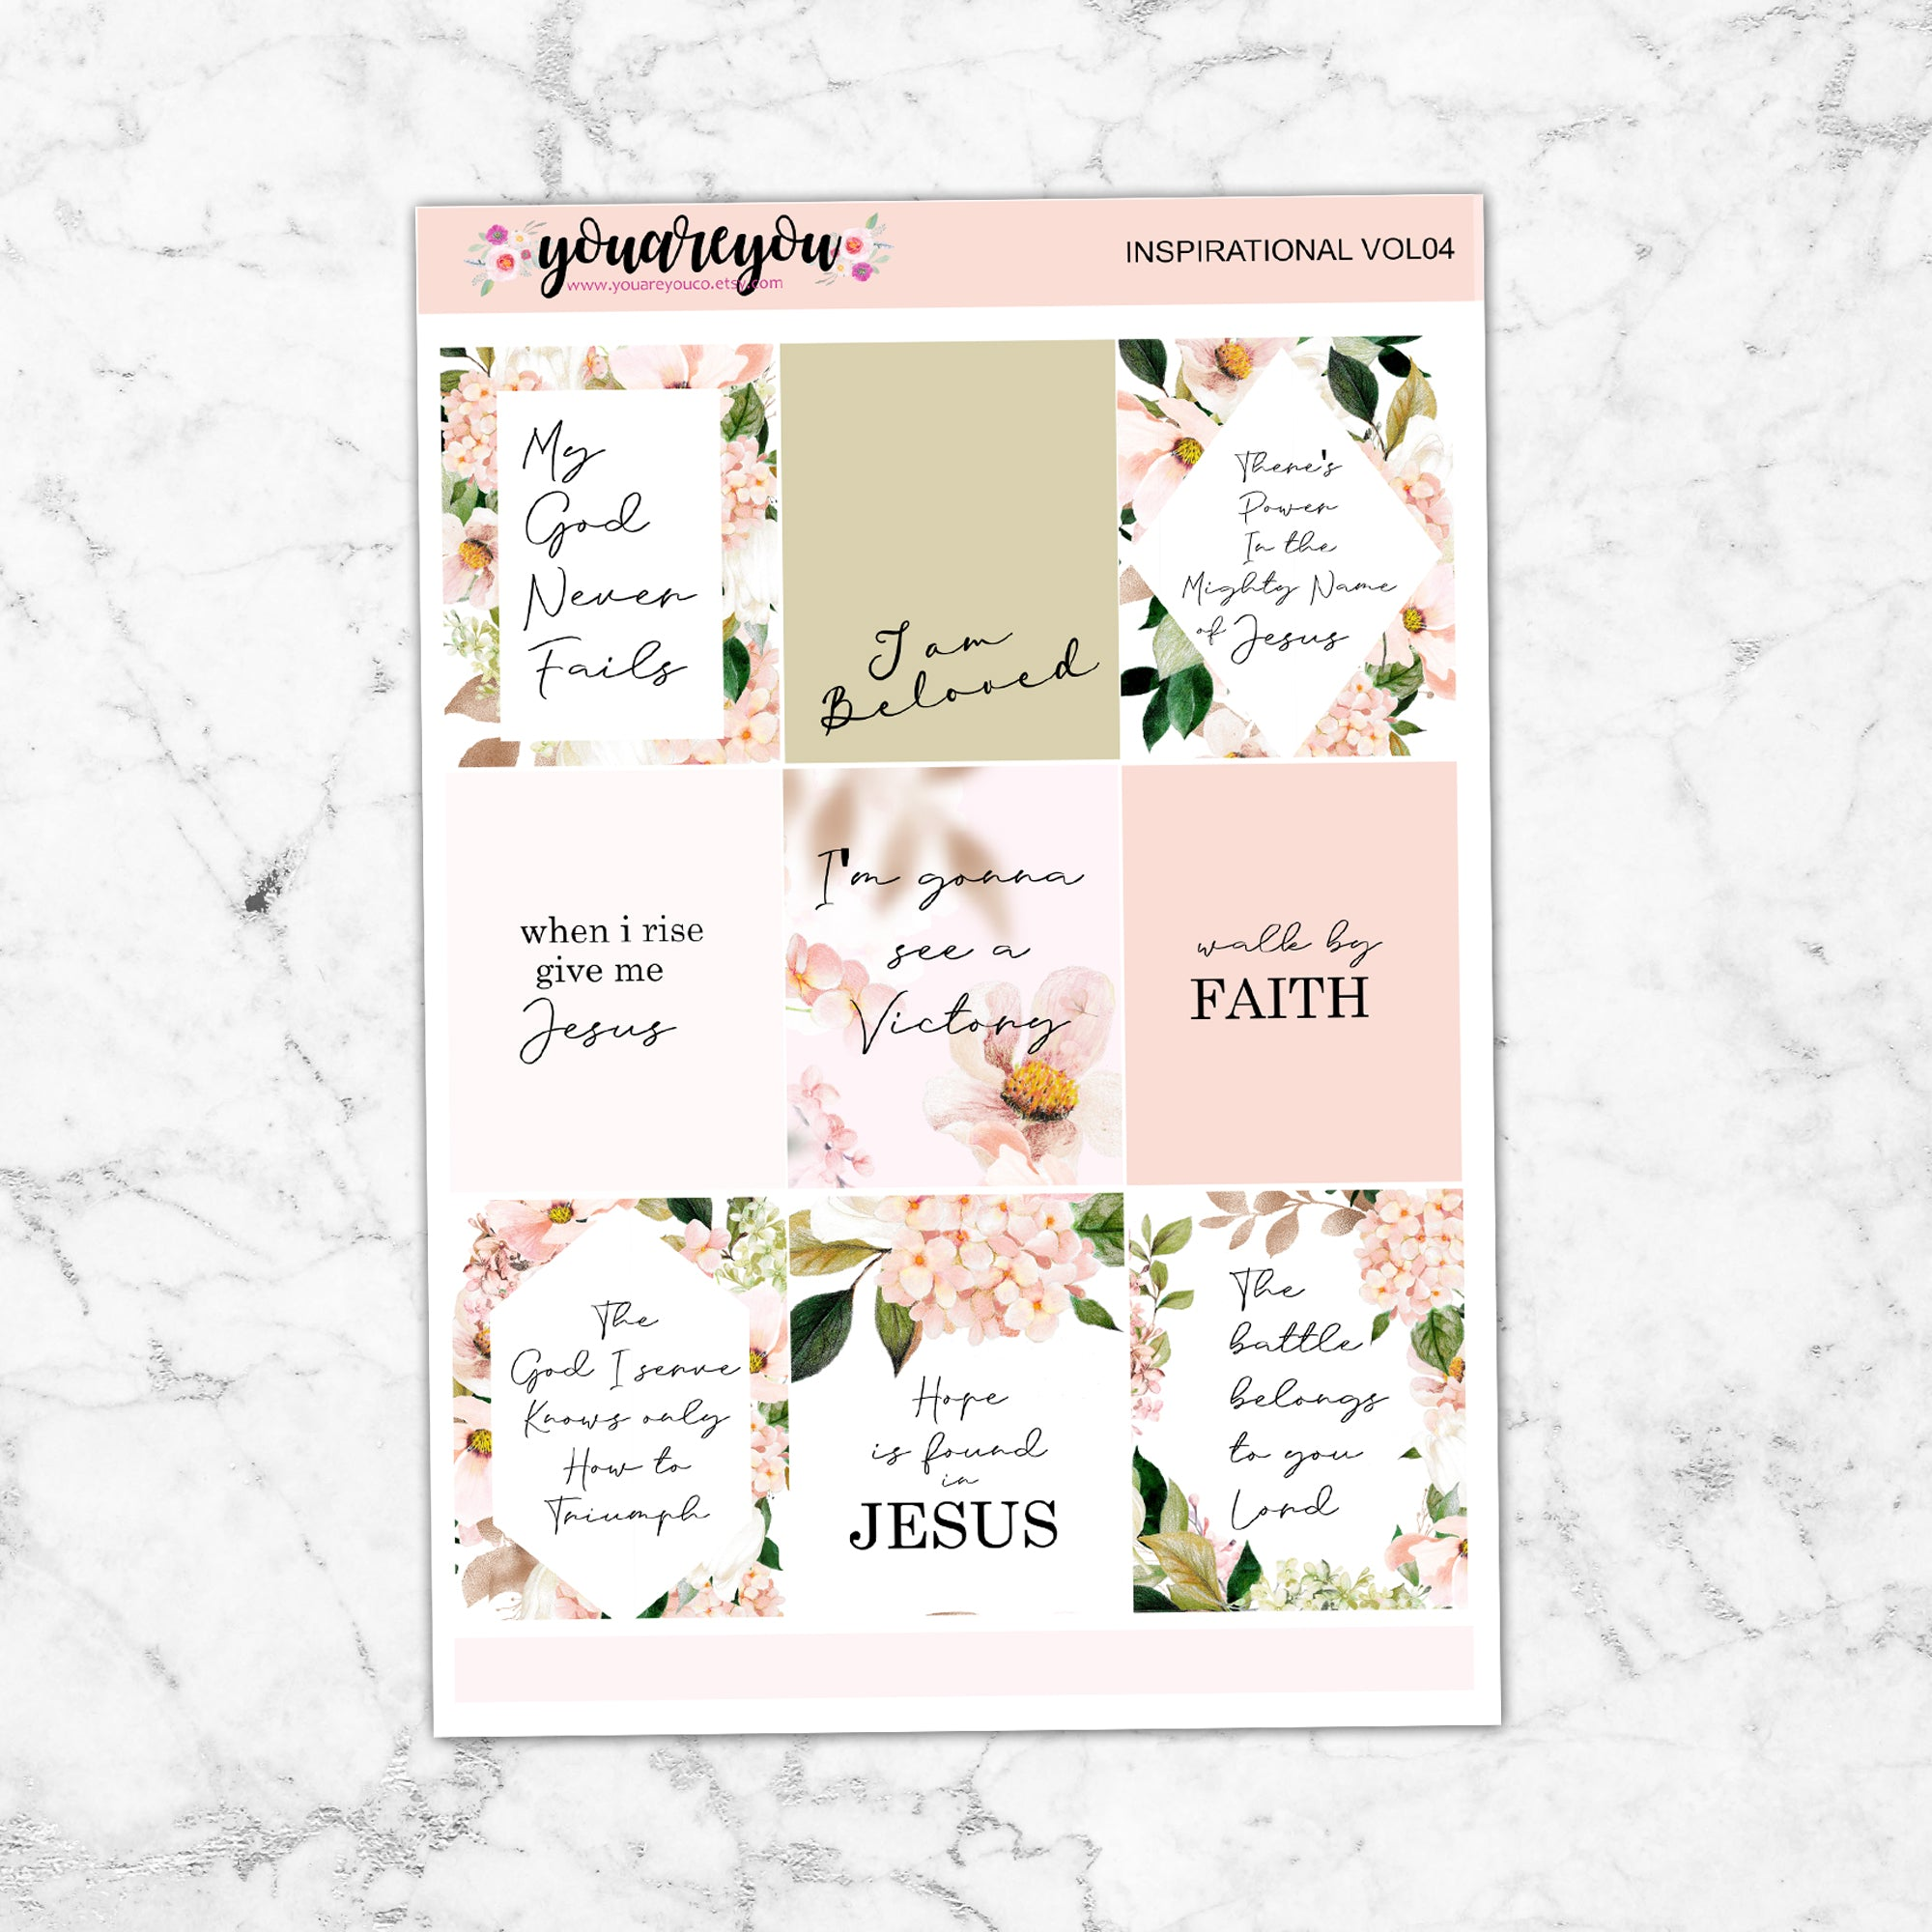 Foil Bible Verses Inspirational Quotes Stickers Vol04